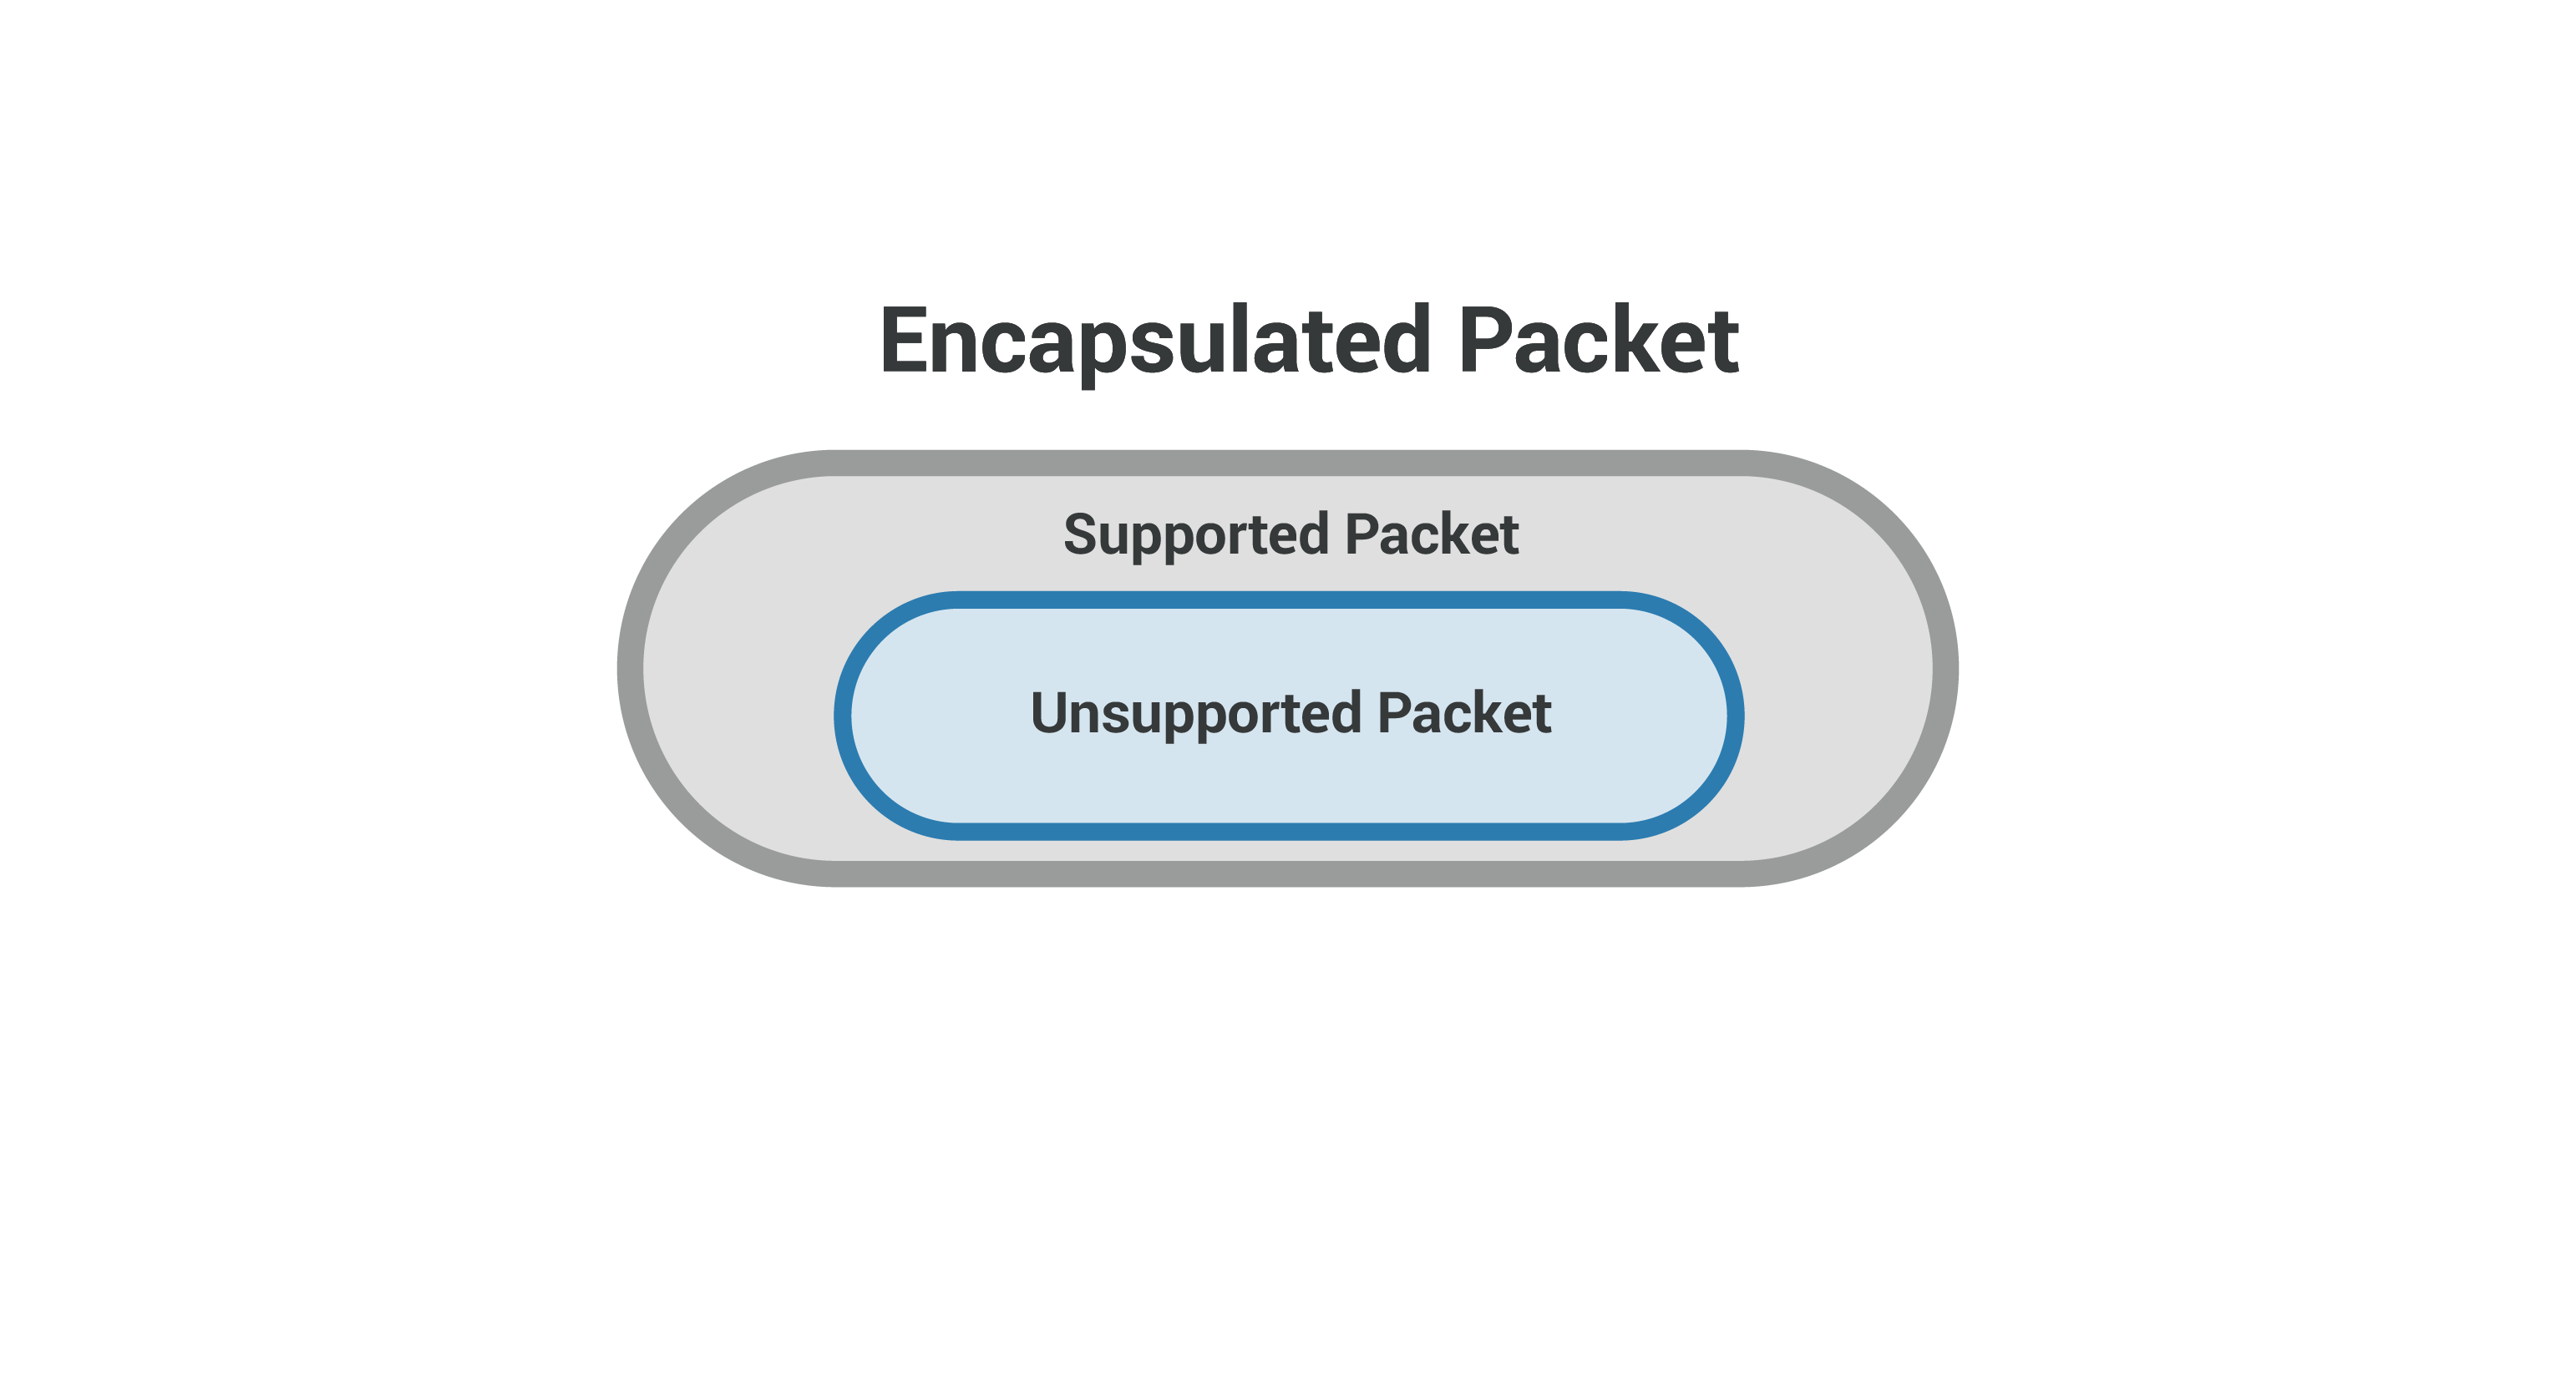 Encapsulated packet - network-supported packet inside unsupported packet